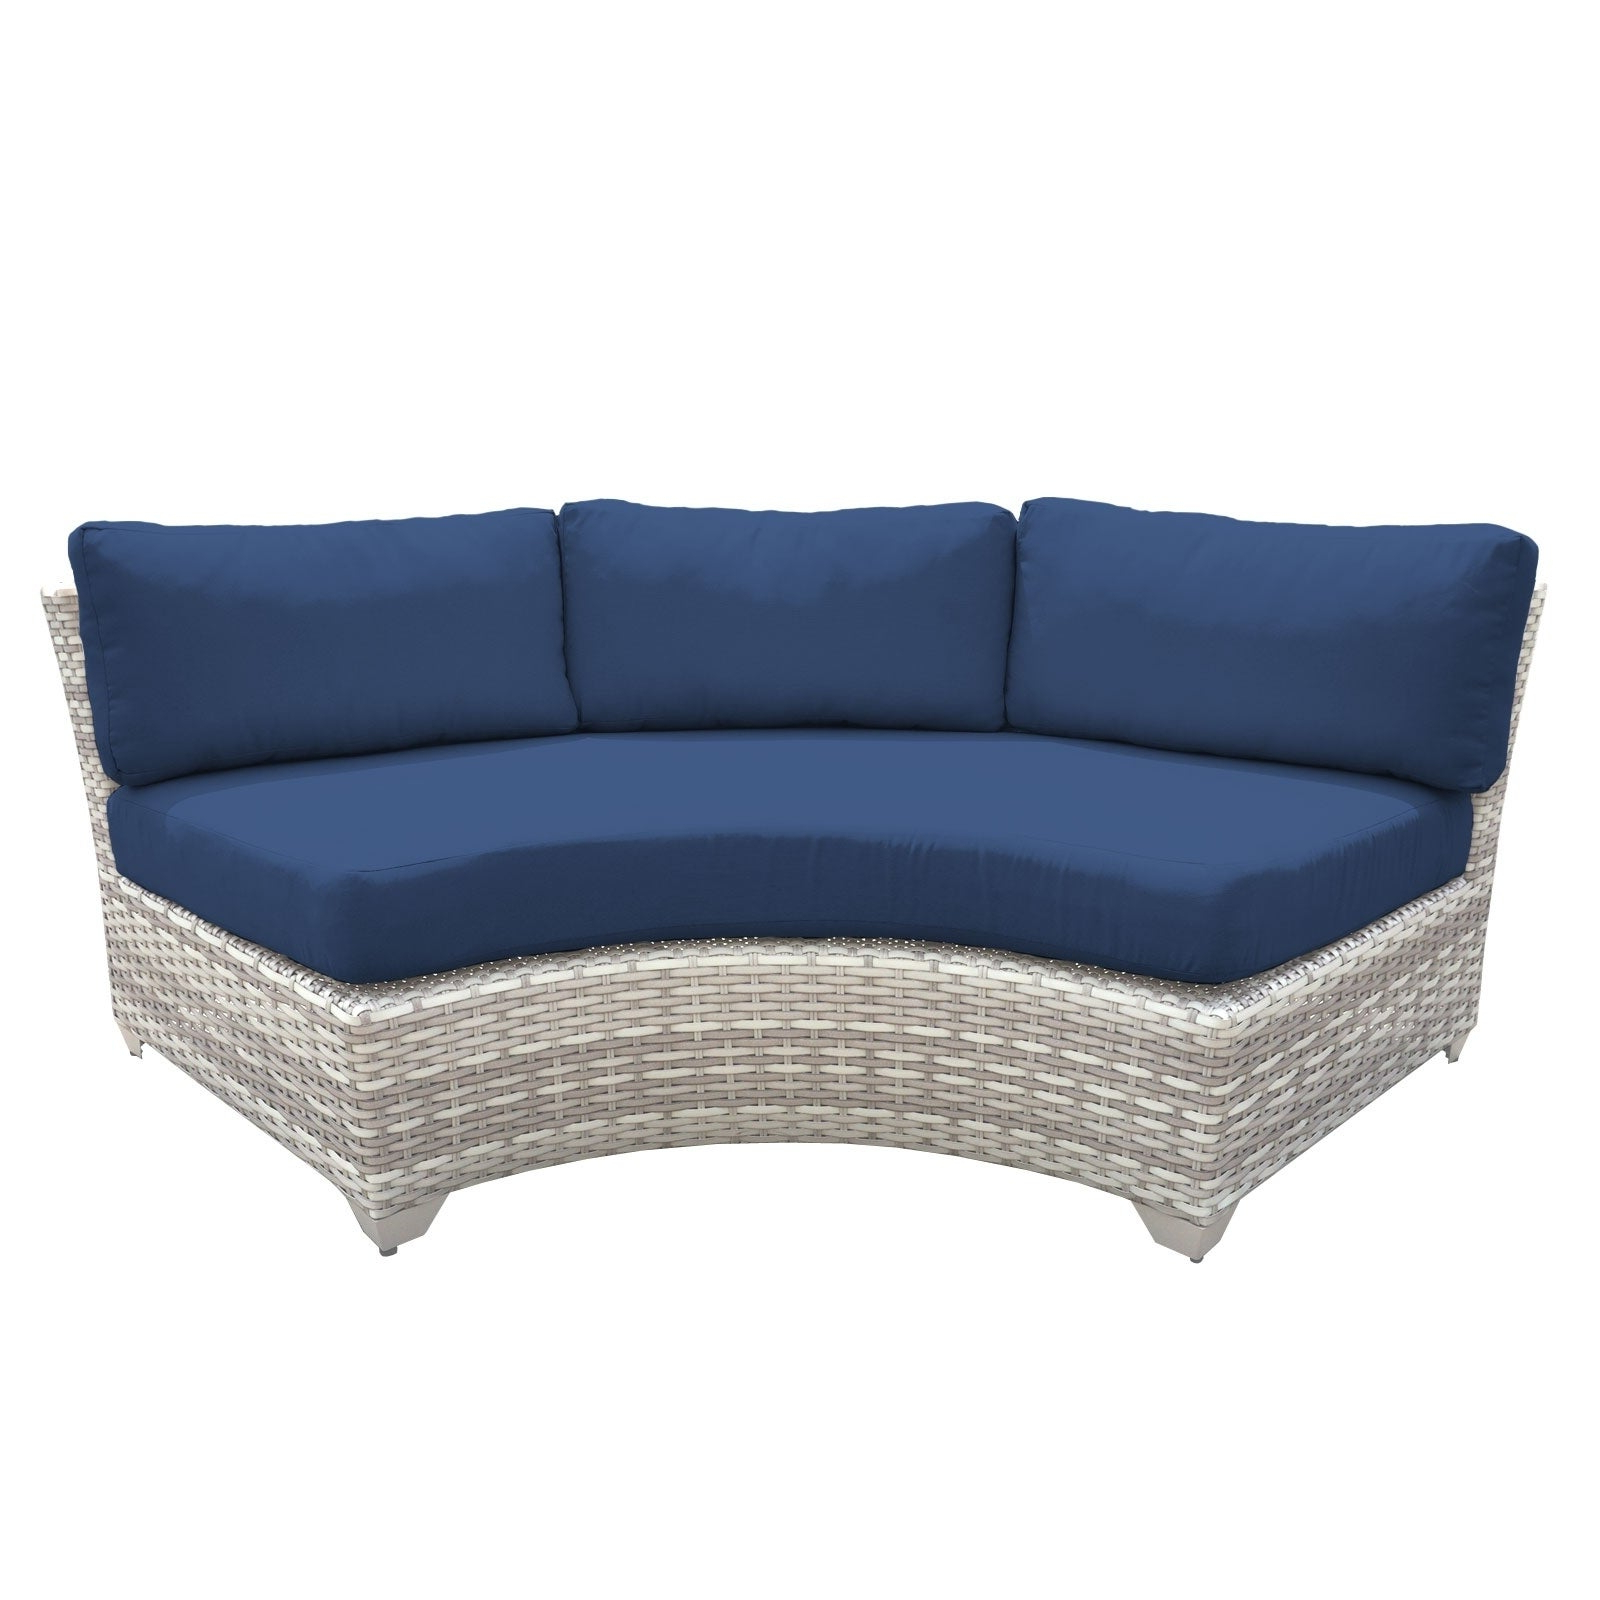 Catamaran 6 Piece Outdoor Patio Wicker Sectional With Fire Pit And Beverage  Ledges Regarding Well Known Baca Patio Sofas With Cushions (View 10 of 25)